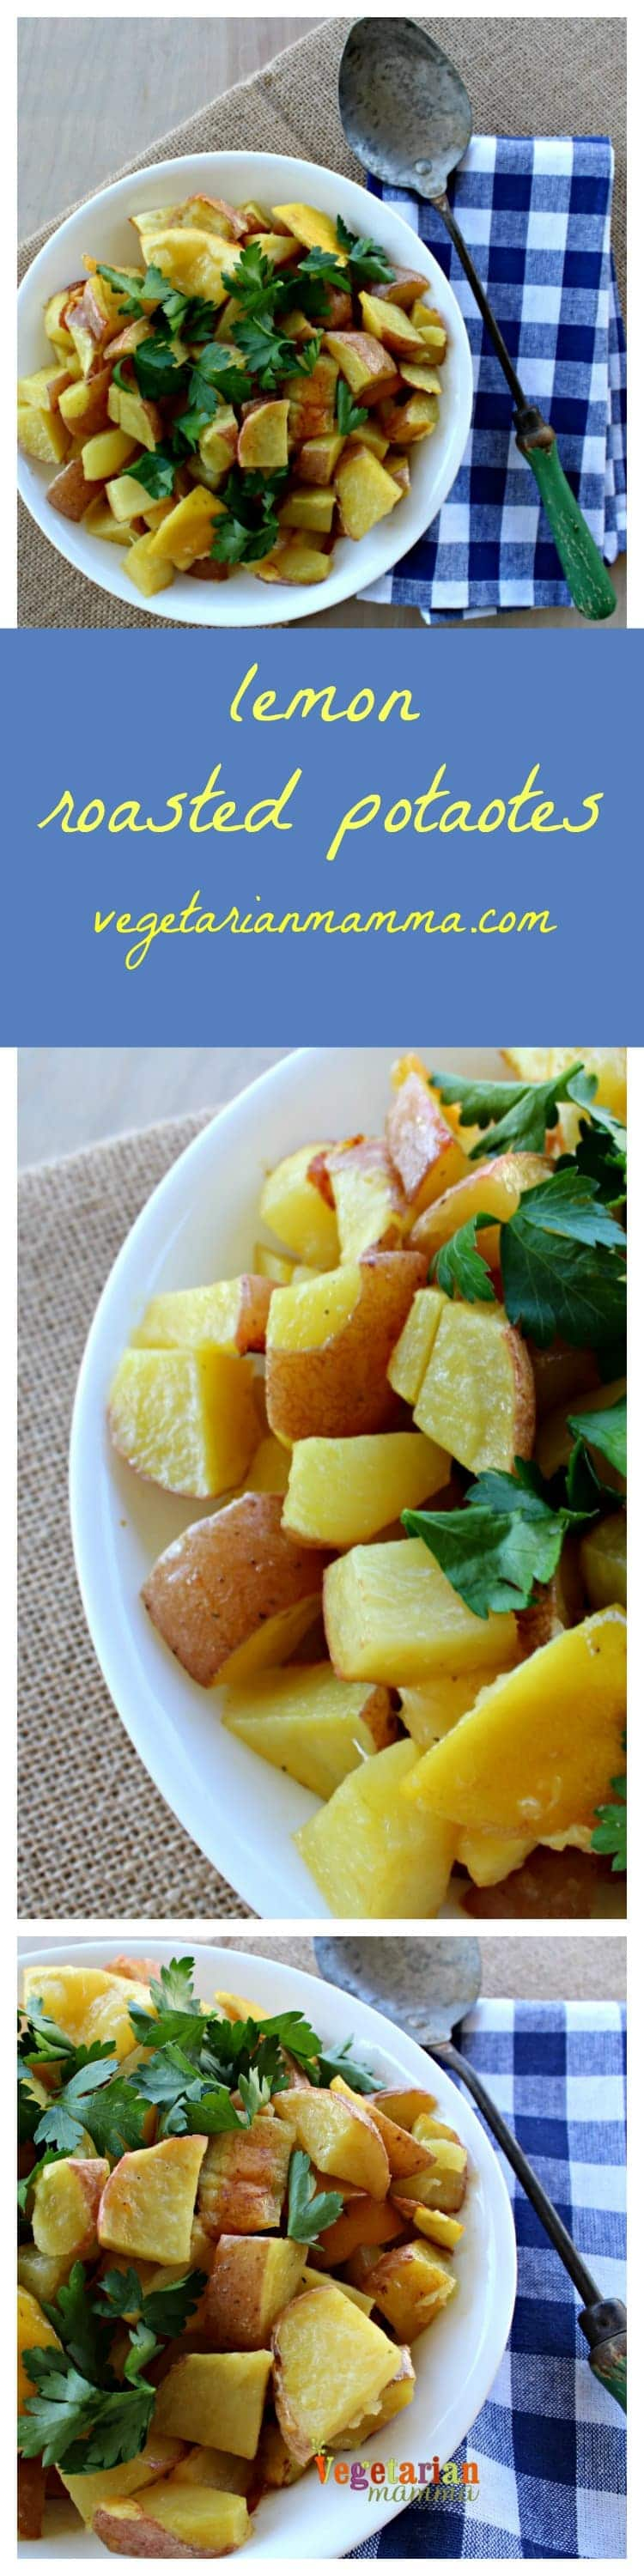 Lemon Roasted Potatoes - Gluten Free Vegetarian Dairy Free